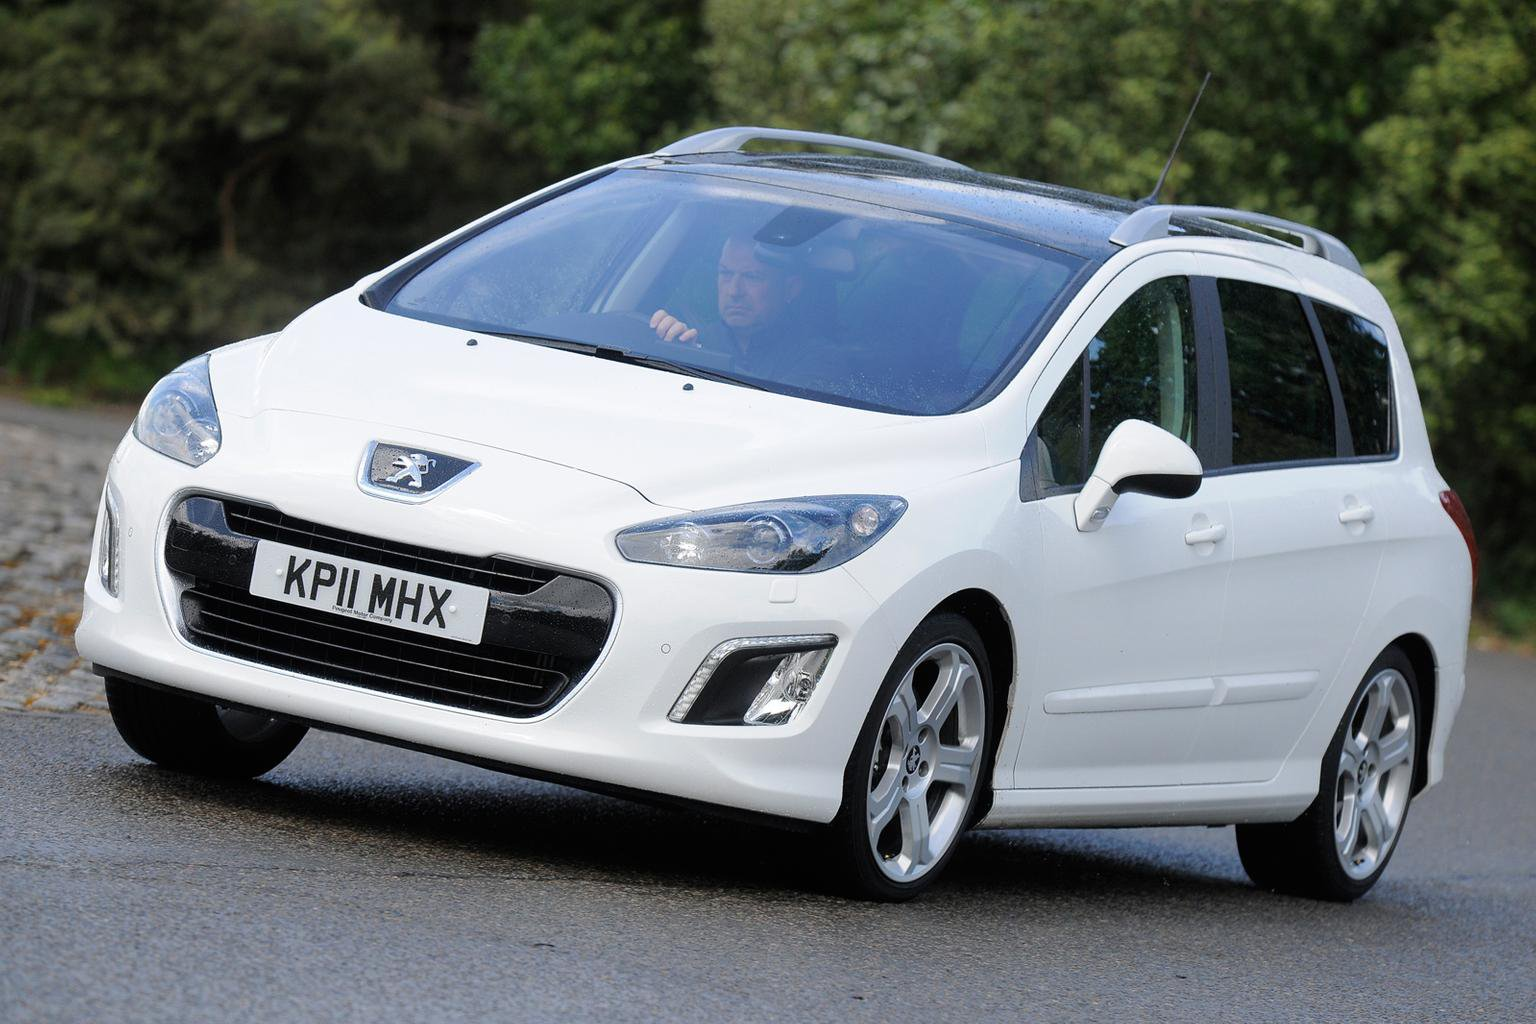 Used cars of the week: Seven-seat Peugeot 308 SWs from 6k